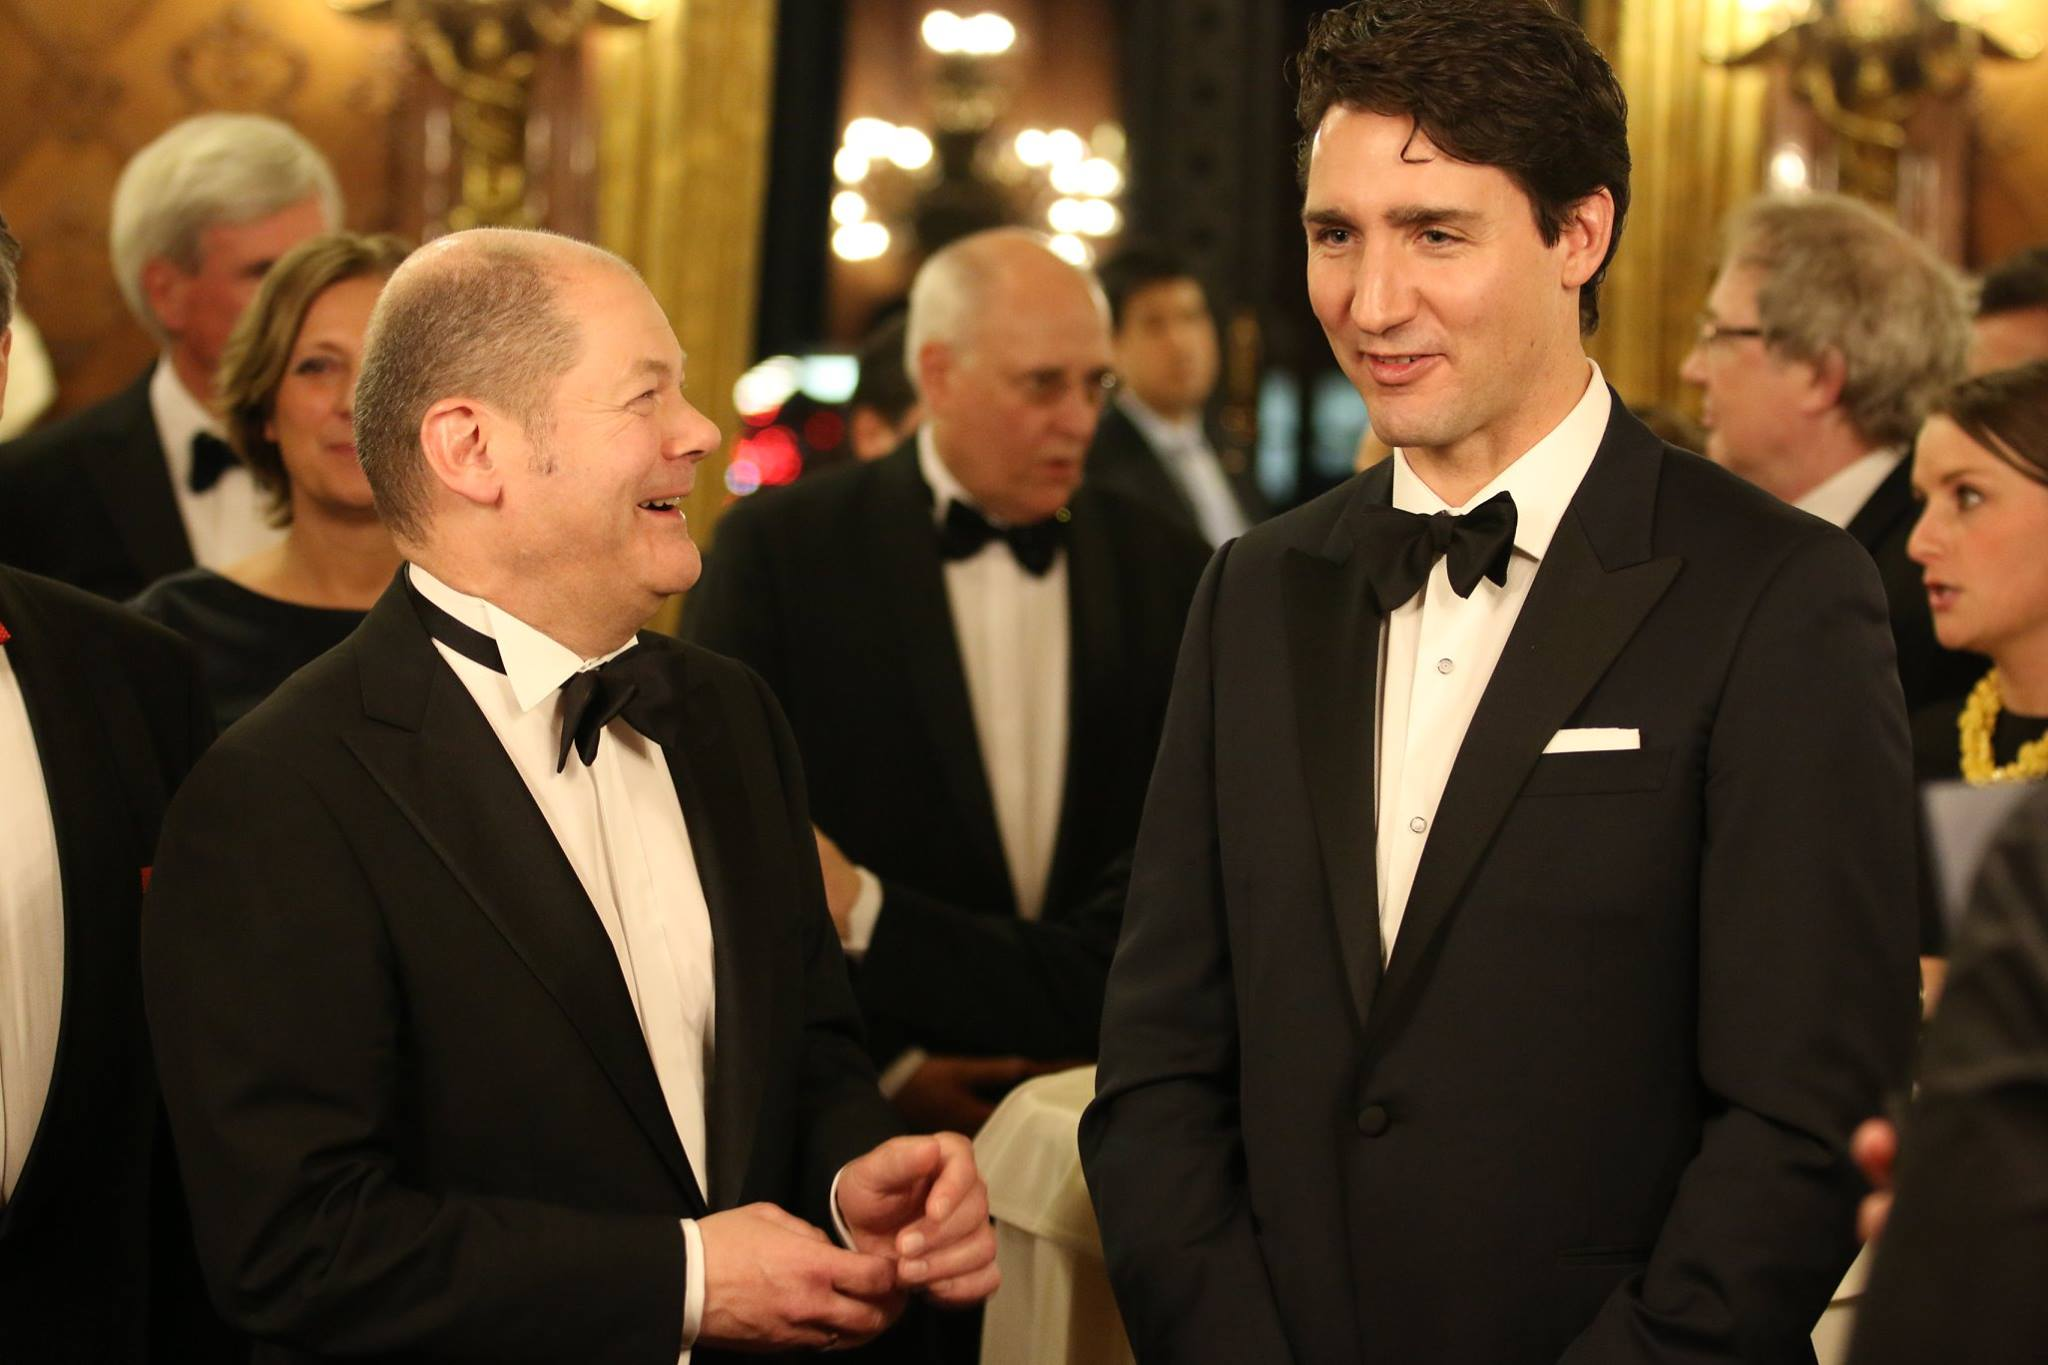 """Prime Minister Justin Trudeau used one of Germany's most prestigious black-tie galas to tell business leaders to """"get real"""" about addressing the anxieties of their workers in an uncertain world. (Photo: Hamburger Senat/Facebook)"""